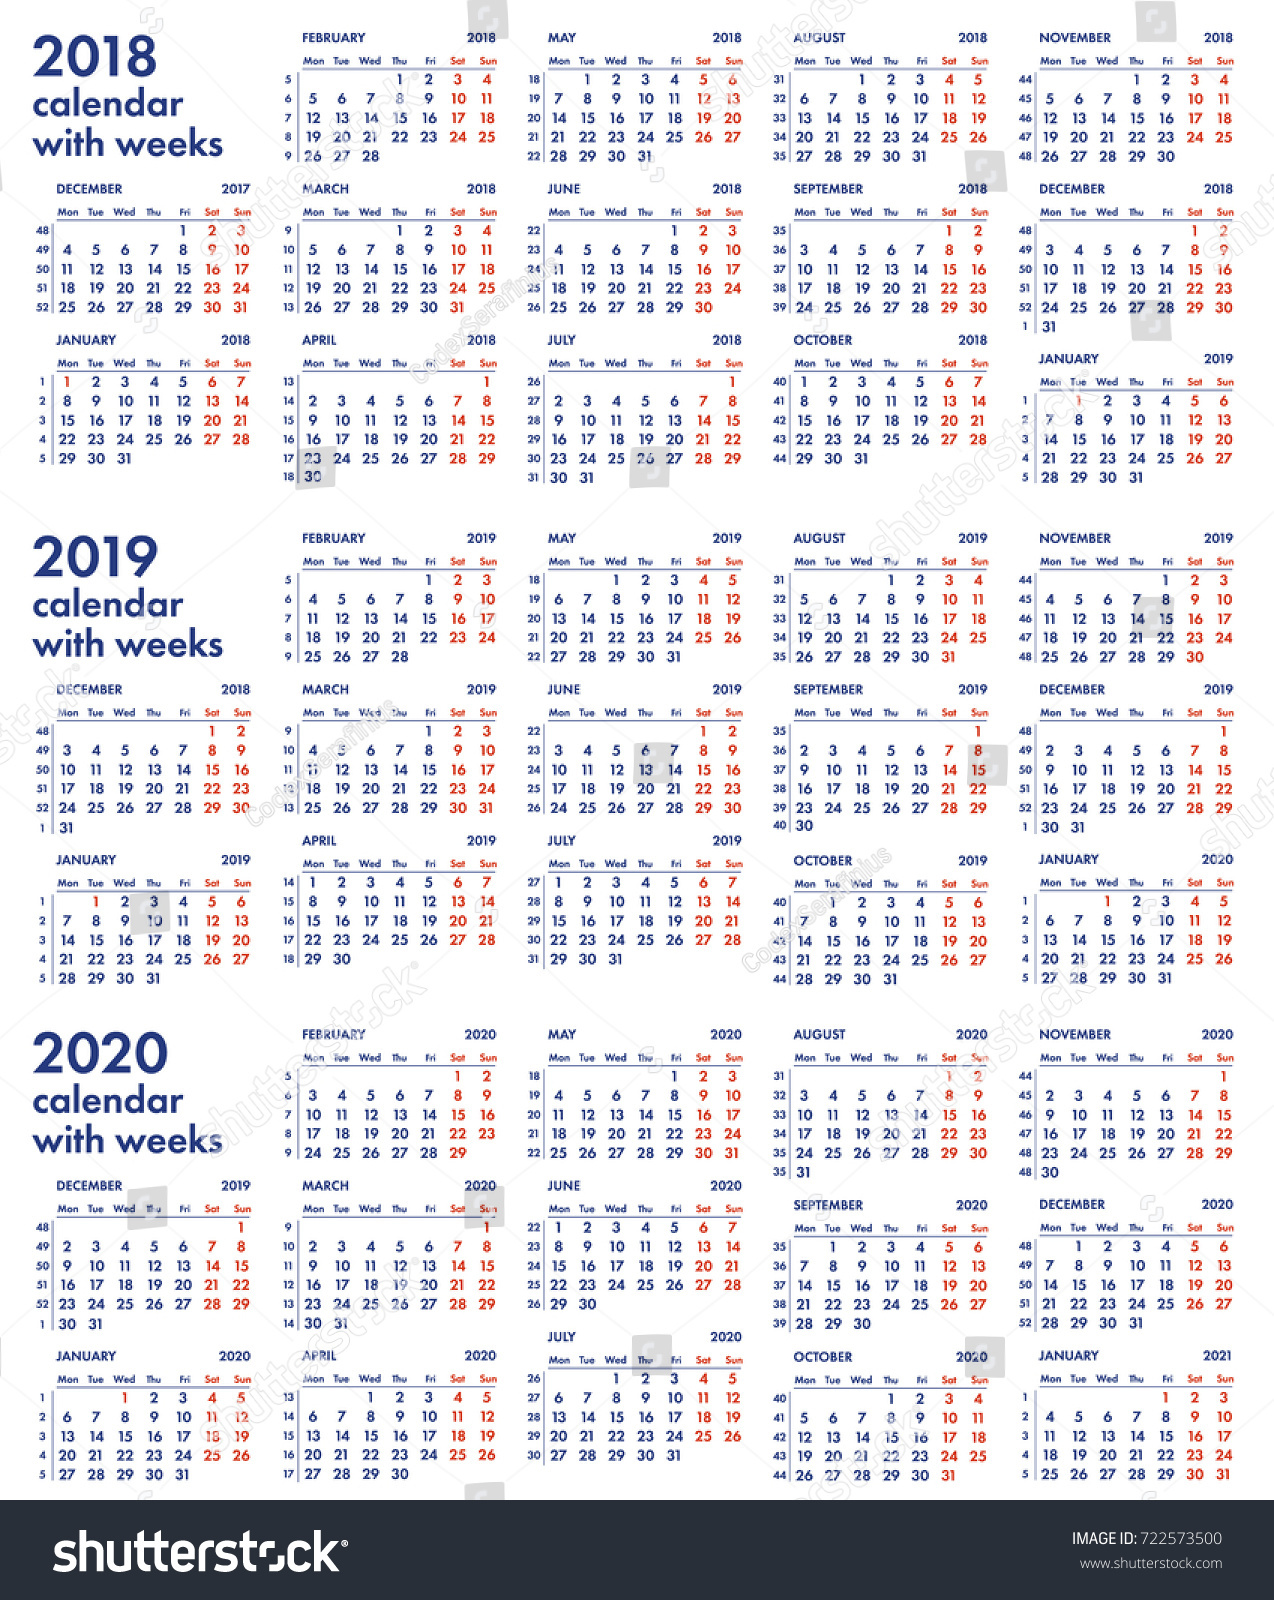 2018 2019 2020 calendar grid with weeks numbers vector illustration isolated on white background for